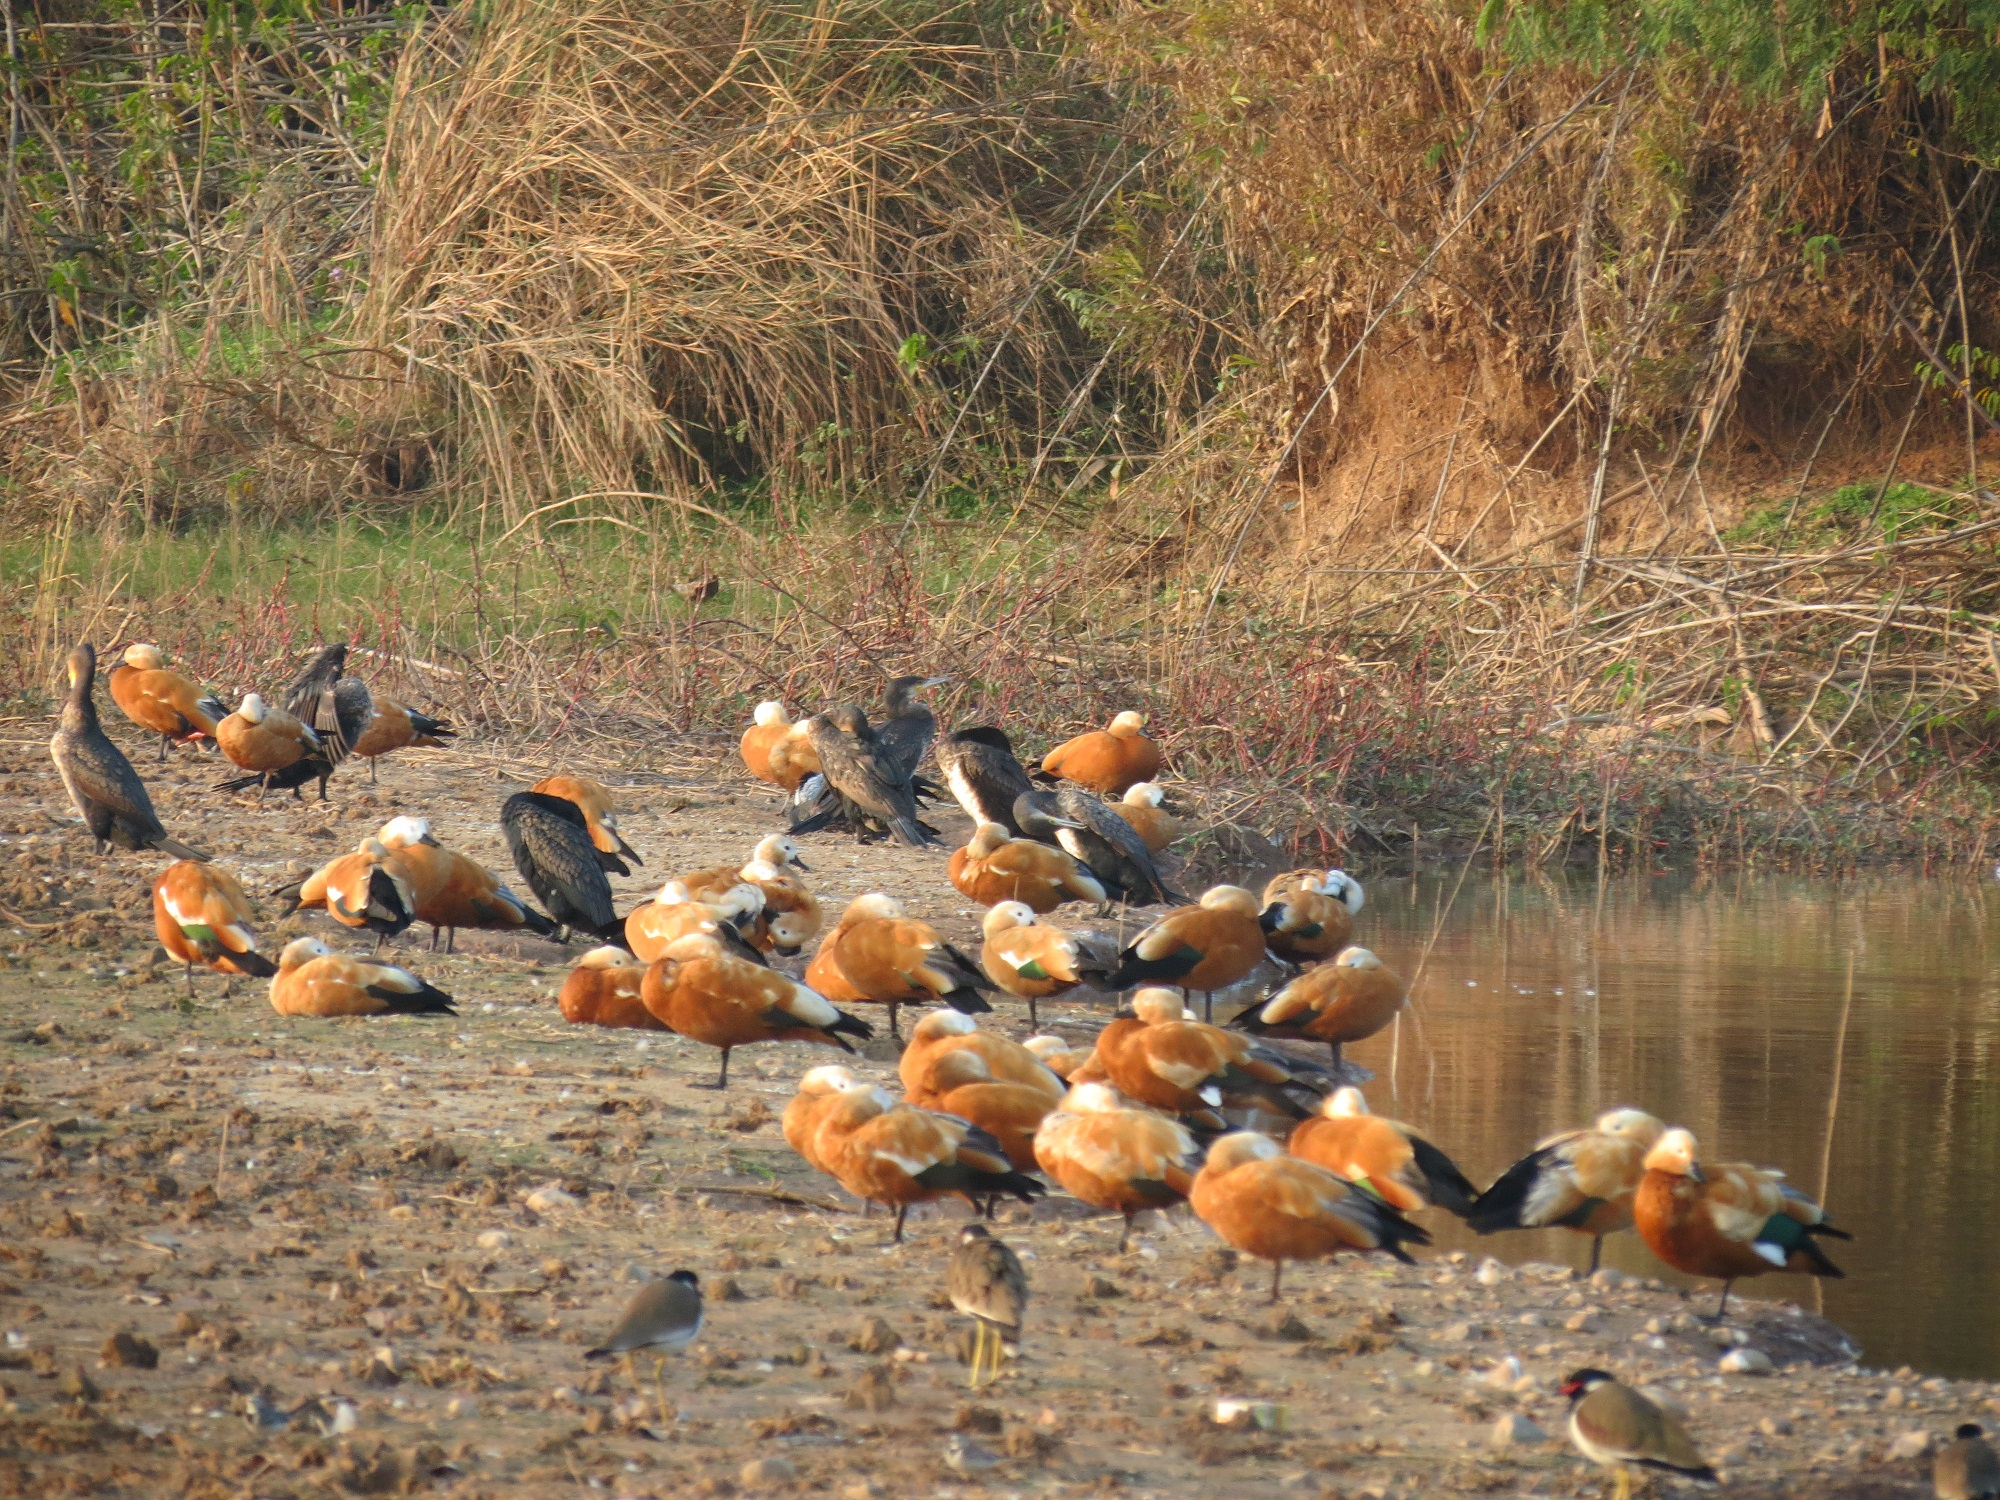 Winters see the arrival of many migratory species